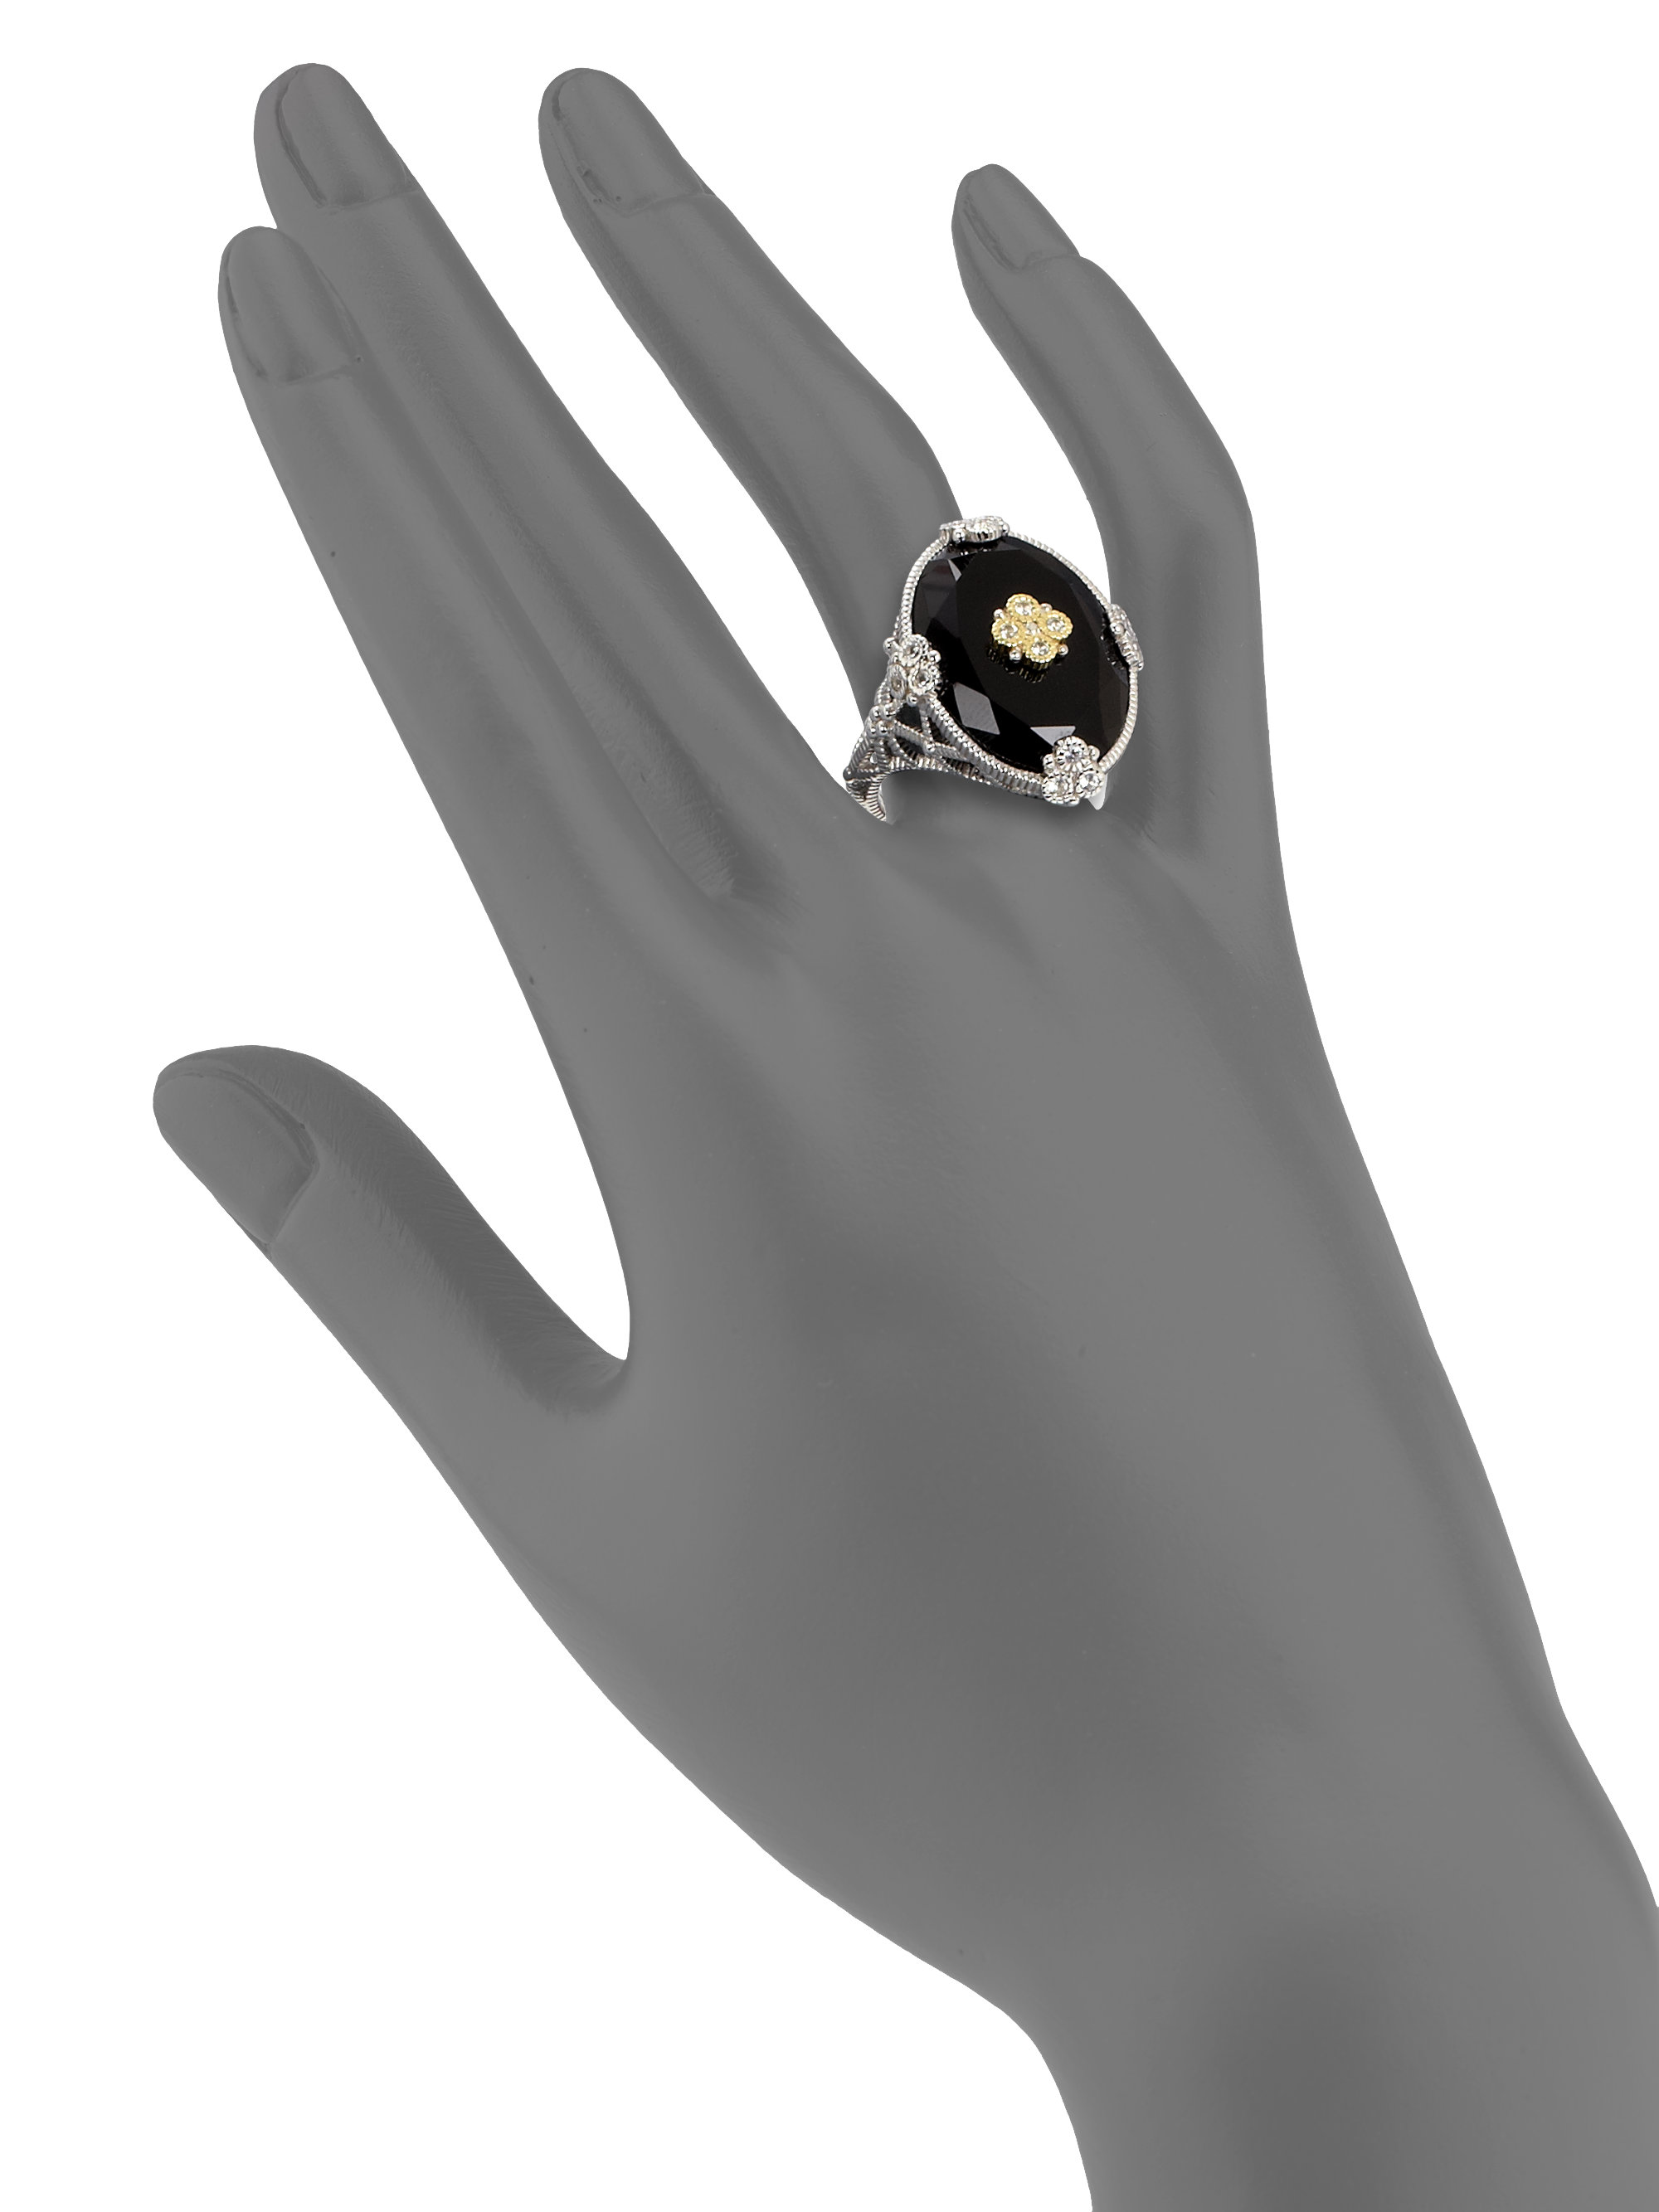 x cocktail deco wedding diamond onyx antiques ring lane butter products rings art